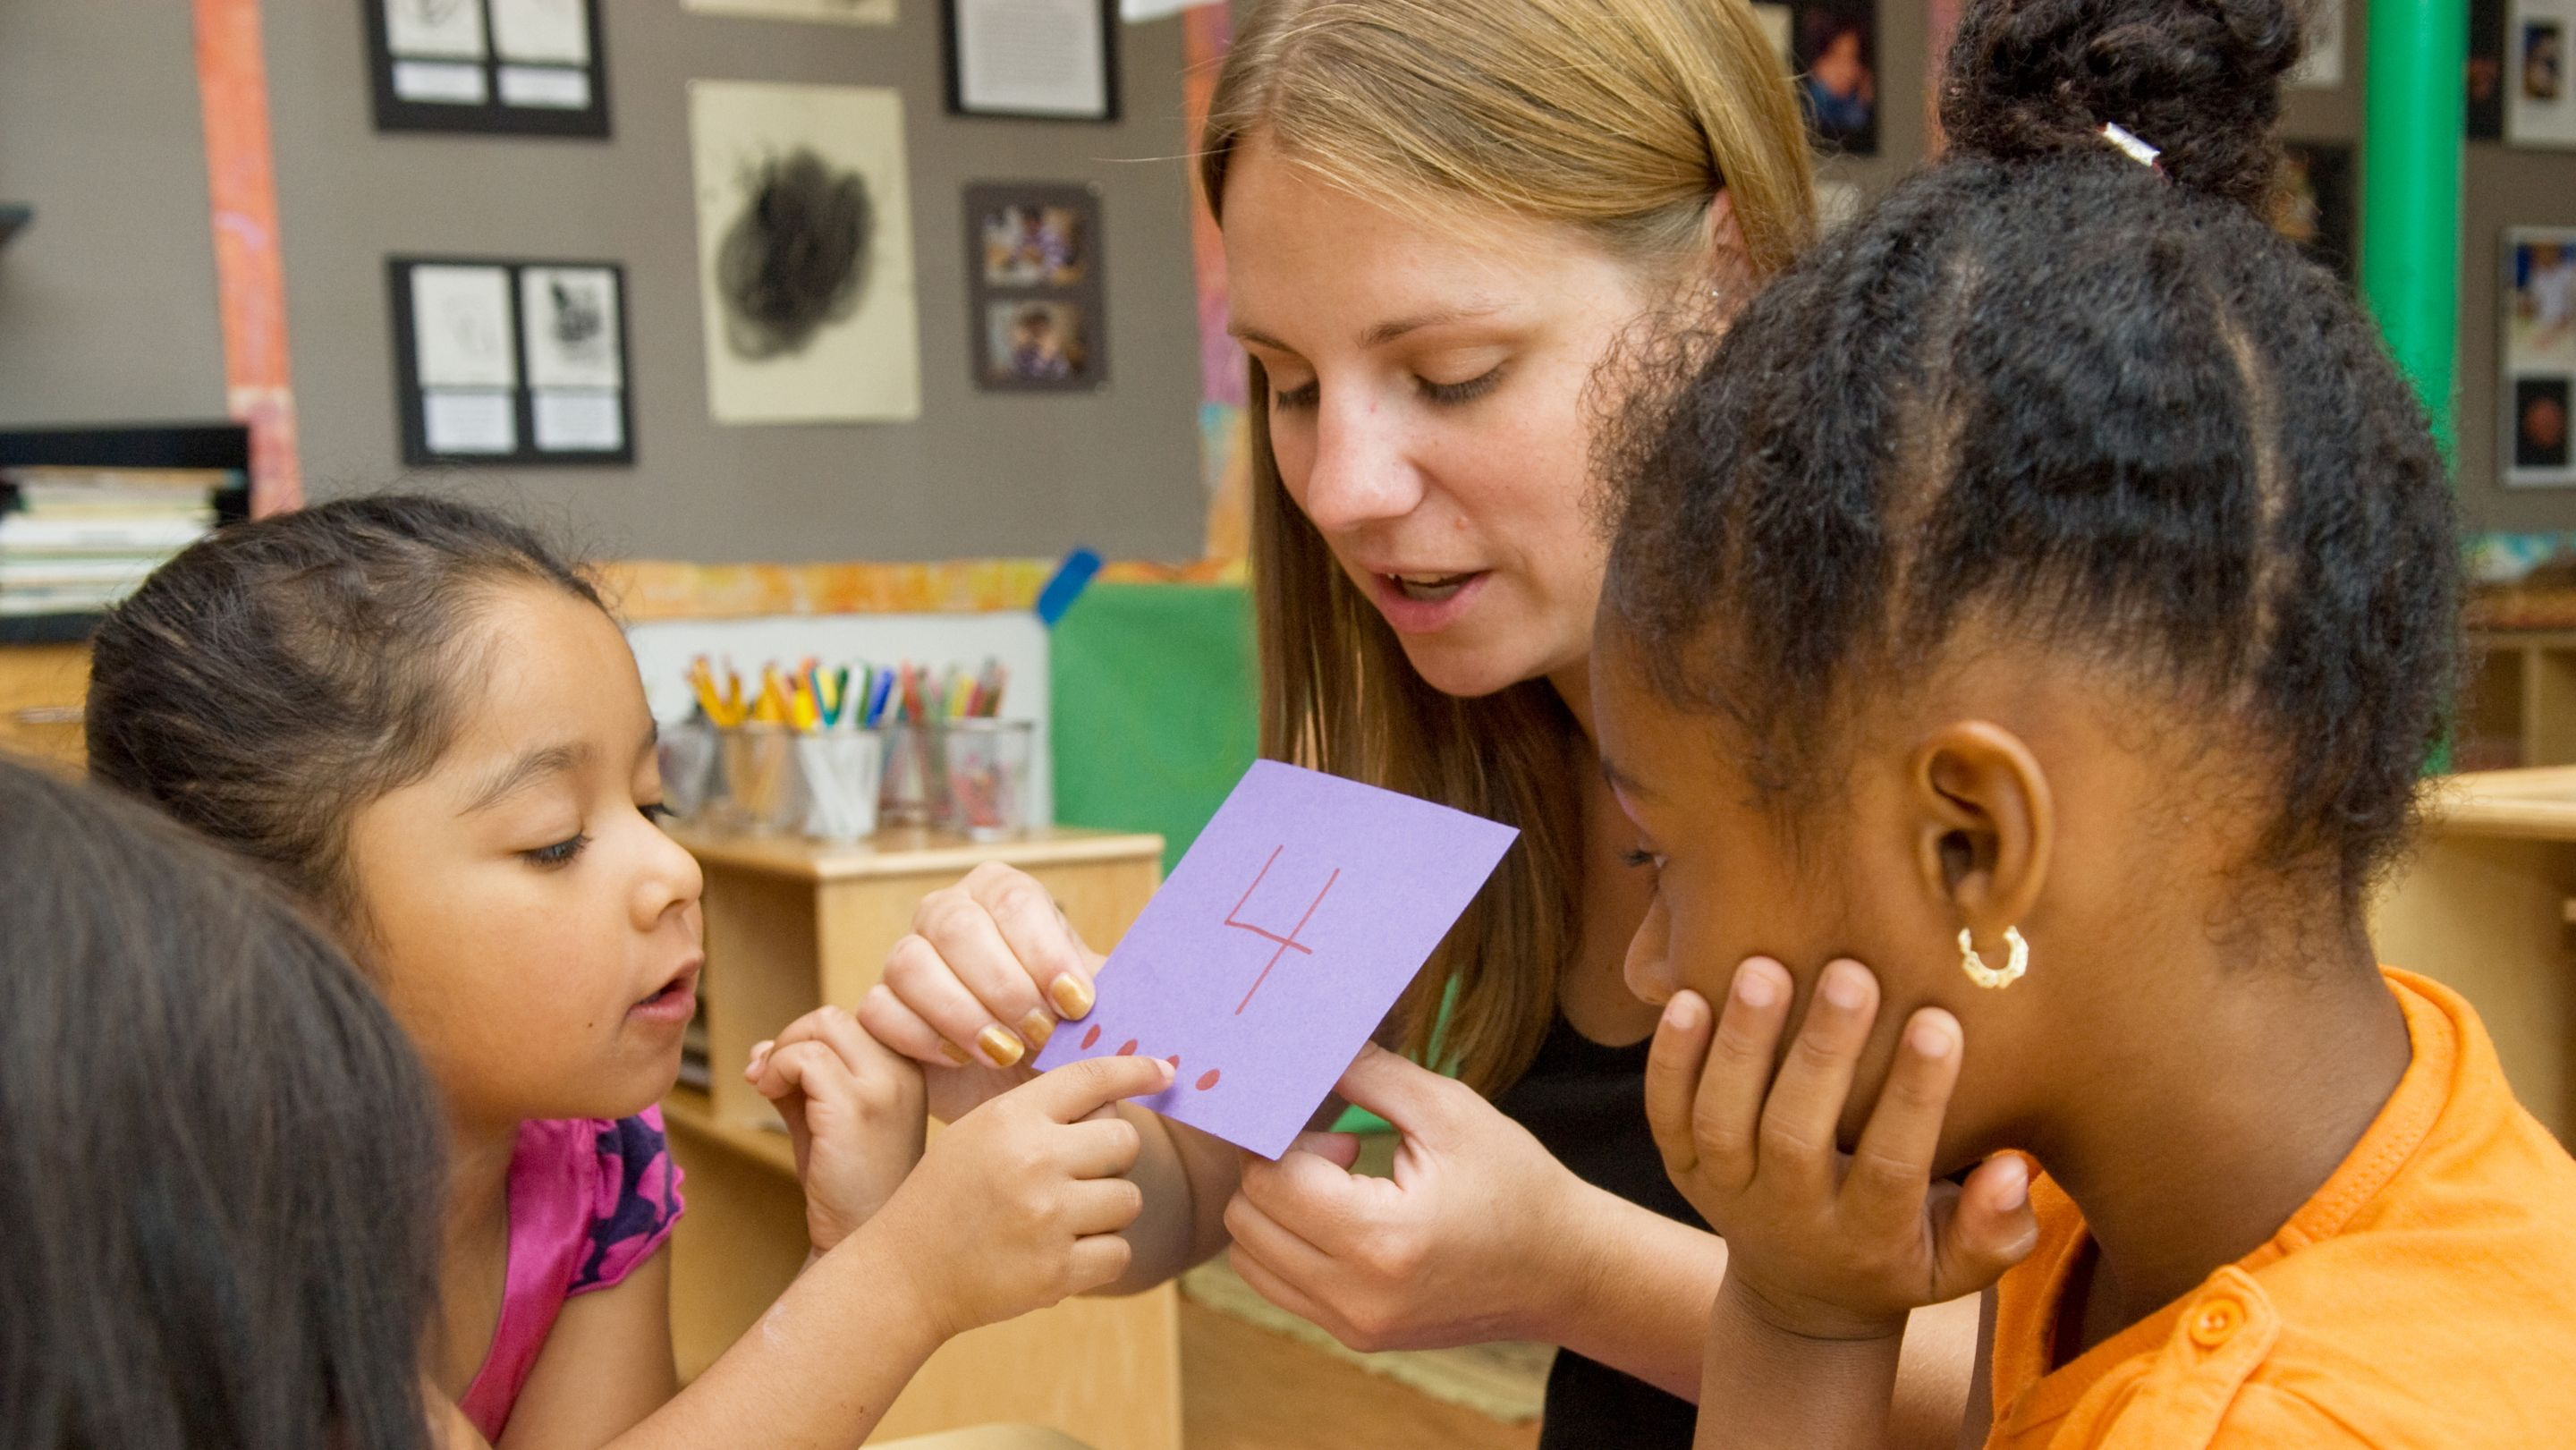 A teacher shows young students a purple construction paper card with the number 4 on it